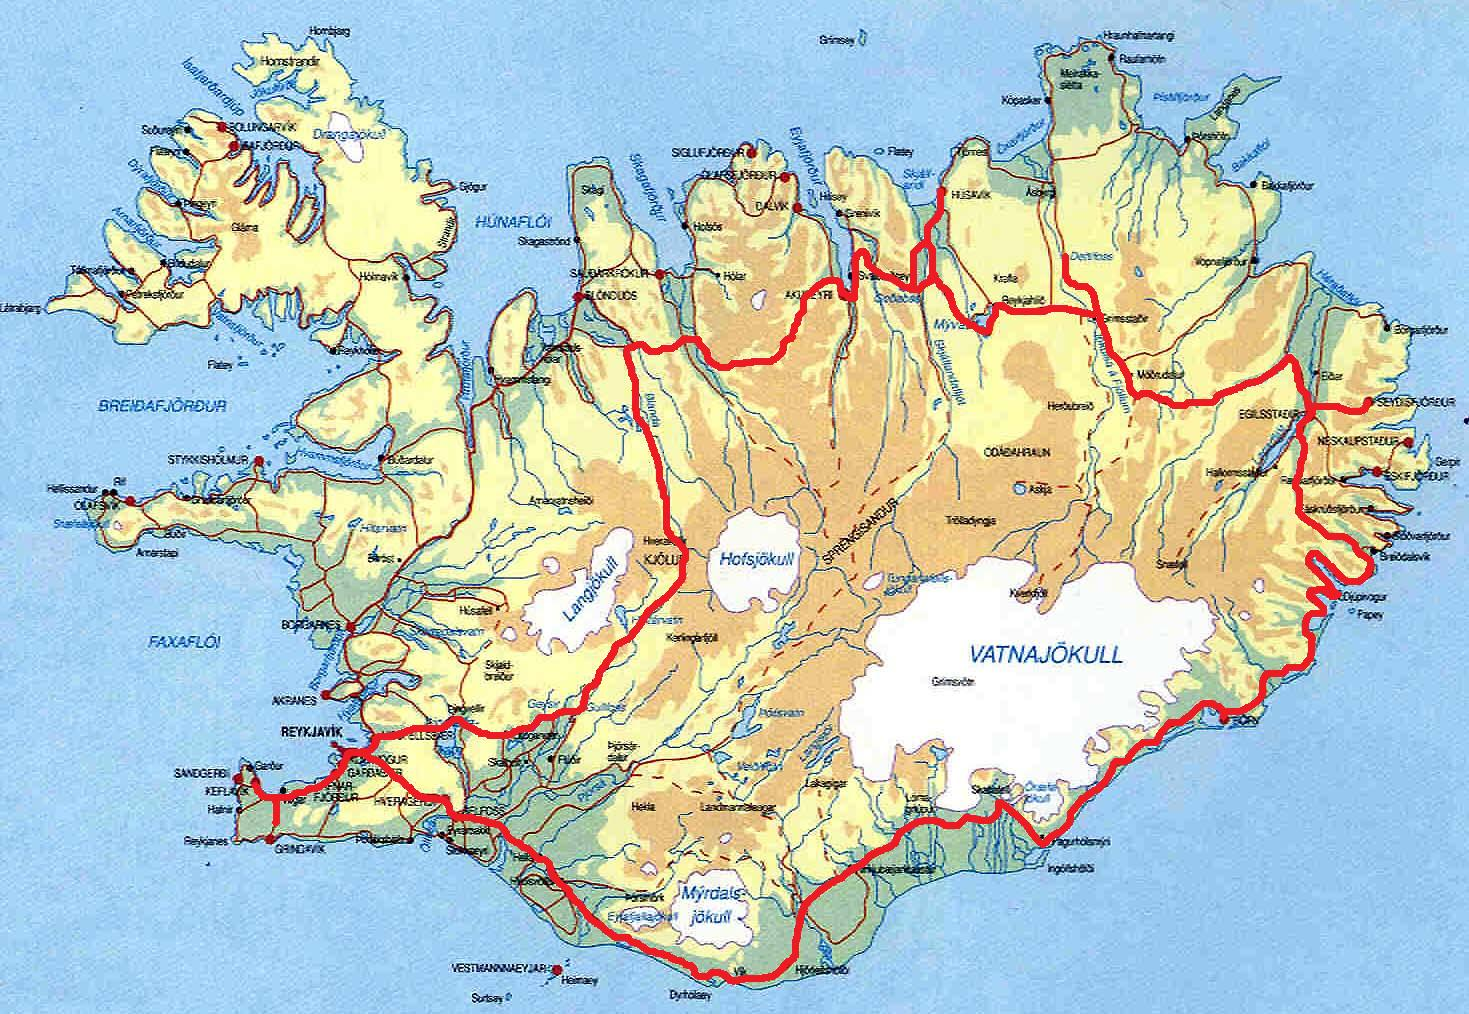 detailed map of game thrones with Viajar Islandia En Bicicleta on The Maps Of A Song Of Ice And Fire Fan Maps together with Ultimate Guide To Turning Minecraft Into A Game Of Thrones Sandbox in addition Behold The Interactive Map Of Faerun likewise More Maps Of Westeros besides Age Of Empires 2 Hd The African Kingdoms.